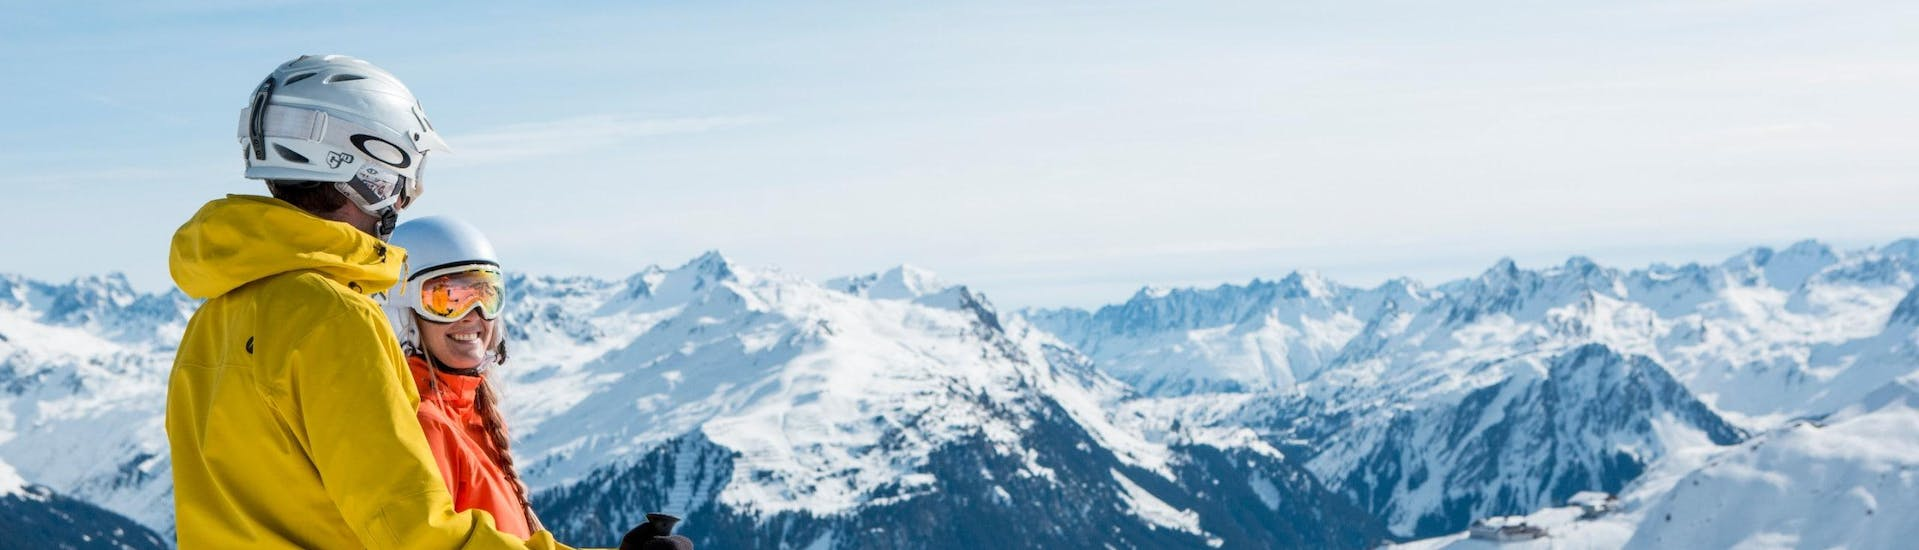 View over the sunny mountain landscape while learning to ski with the ski schools in Silvretta Montafon.